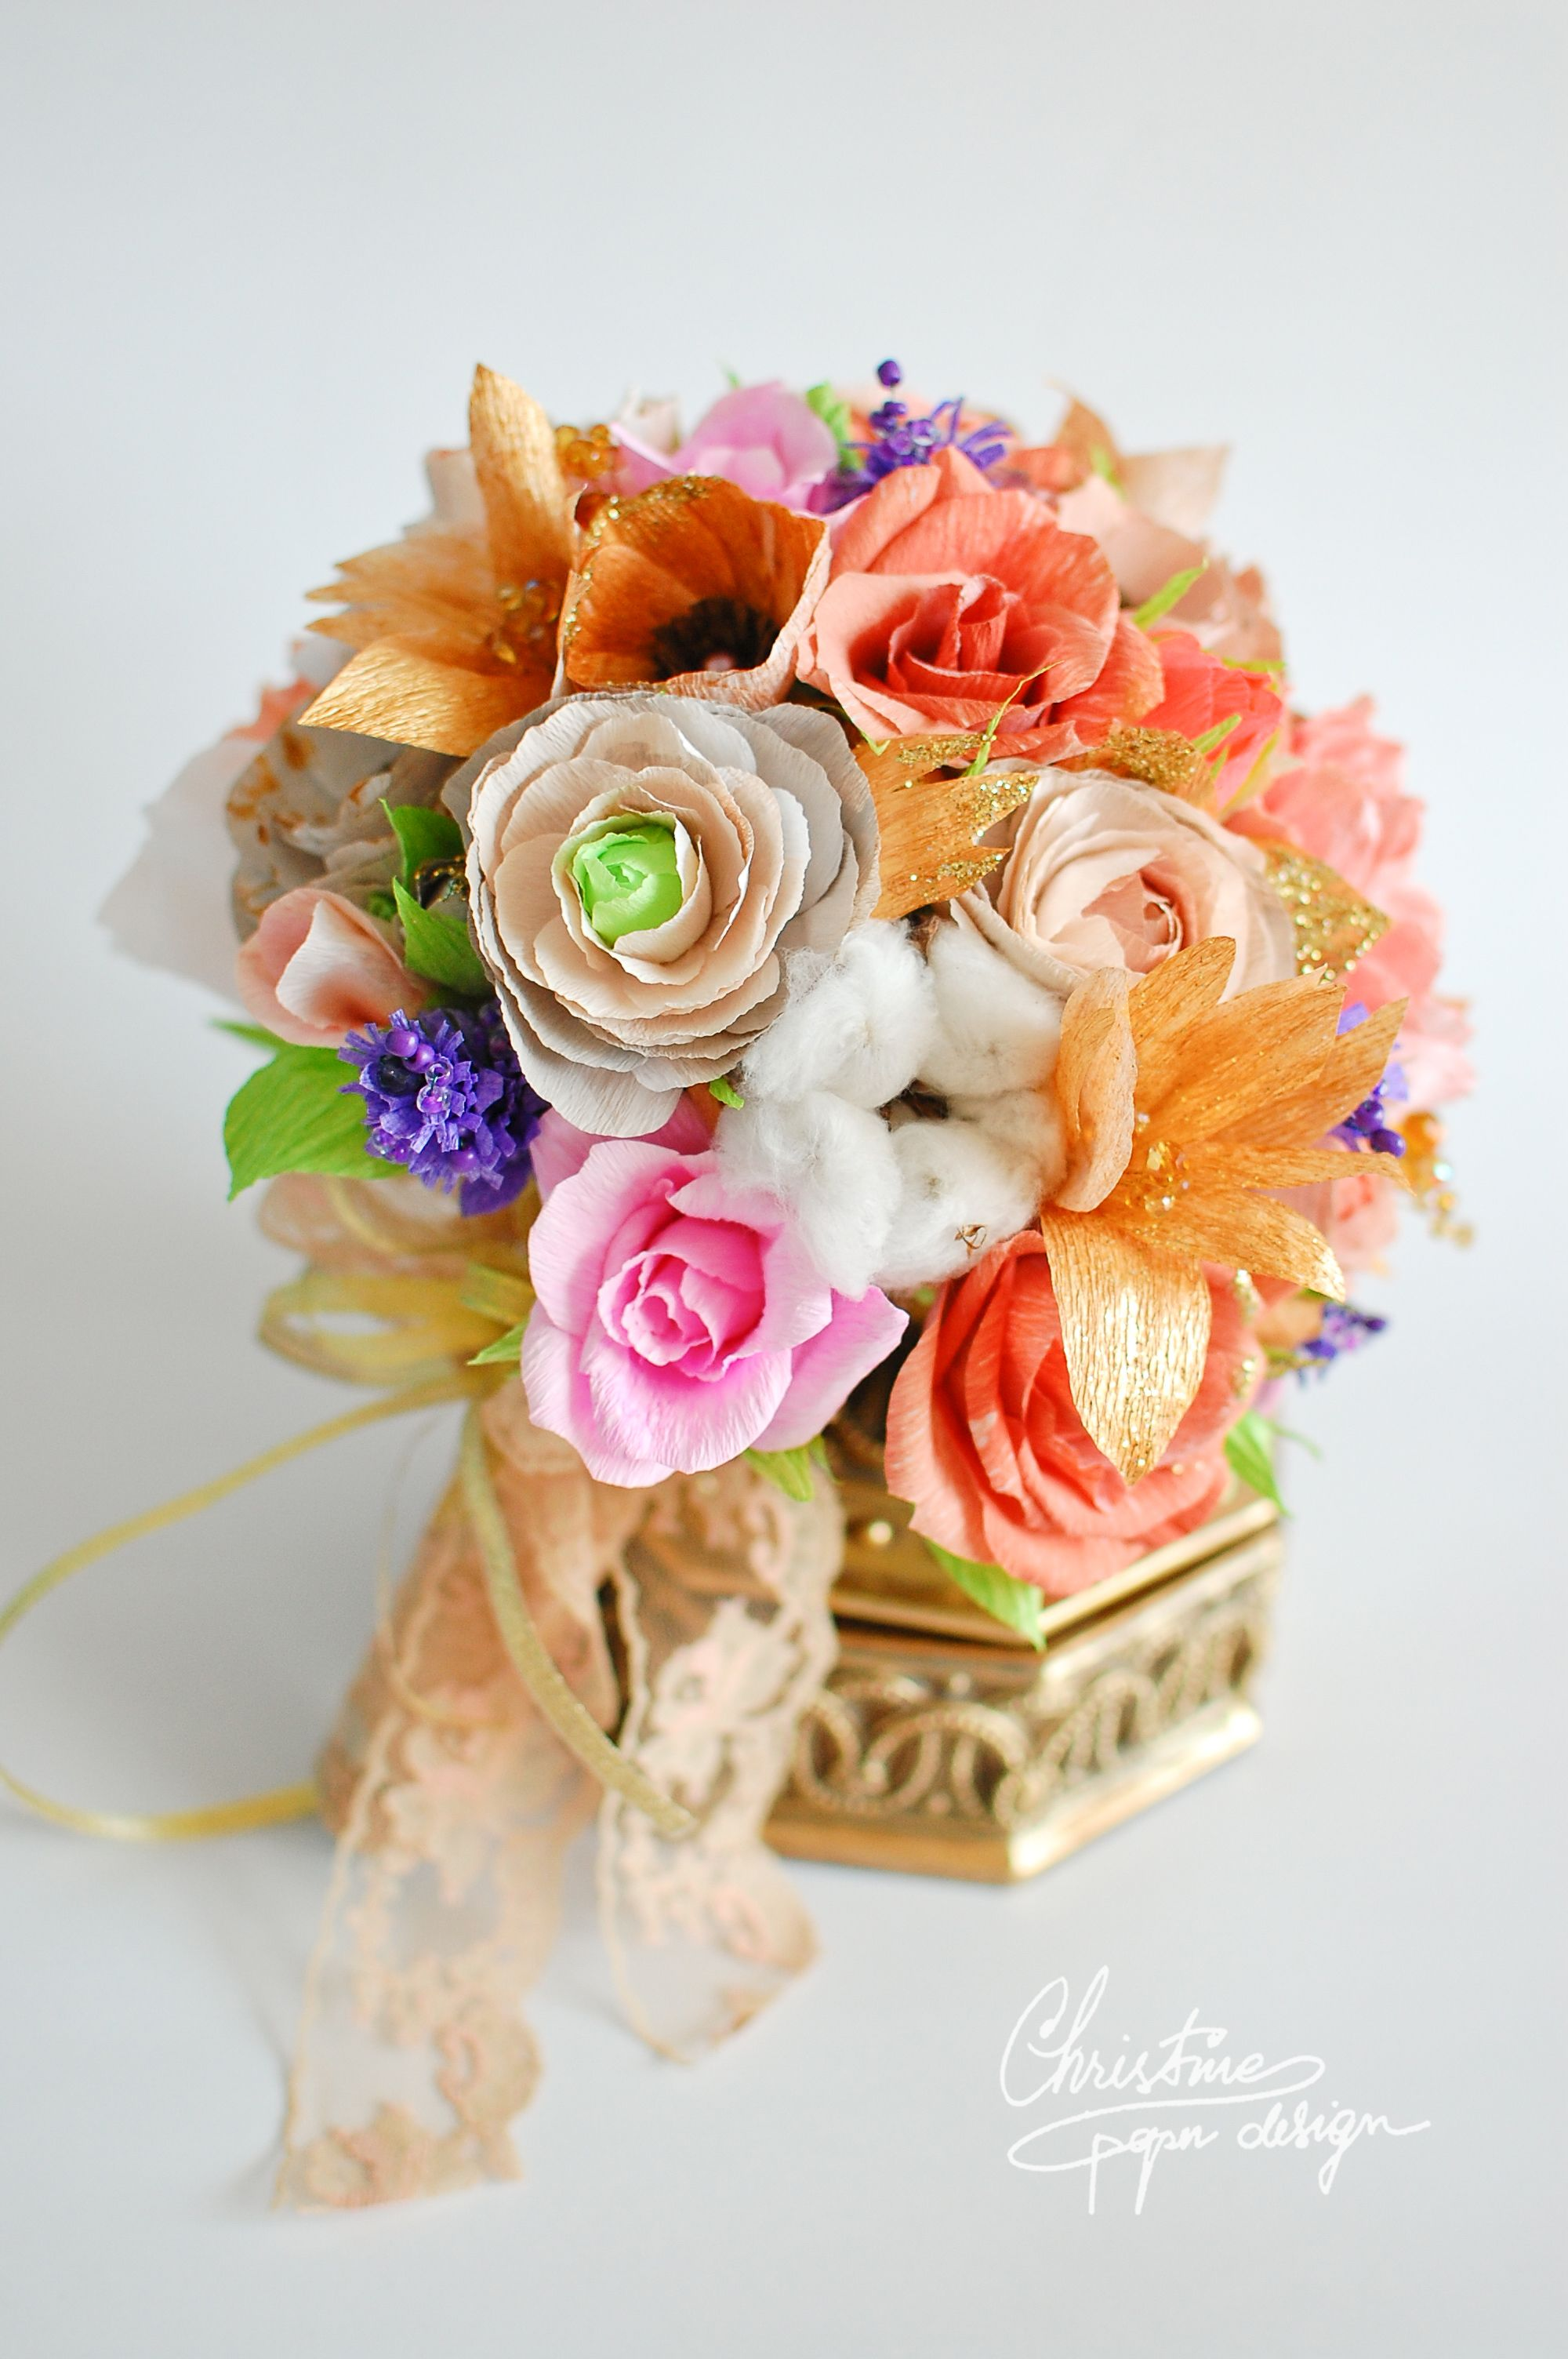 Diy Glamorous Paper Flowers Bouquet With Gold And Shades Of Pink